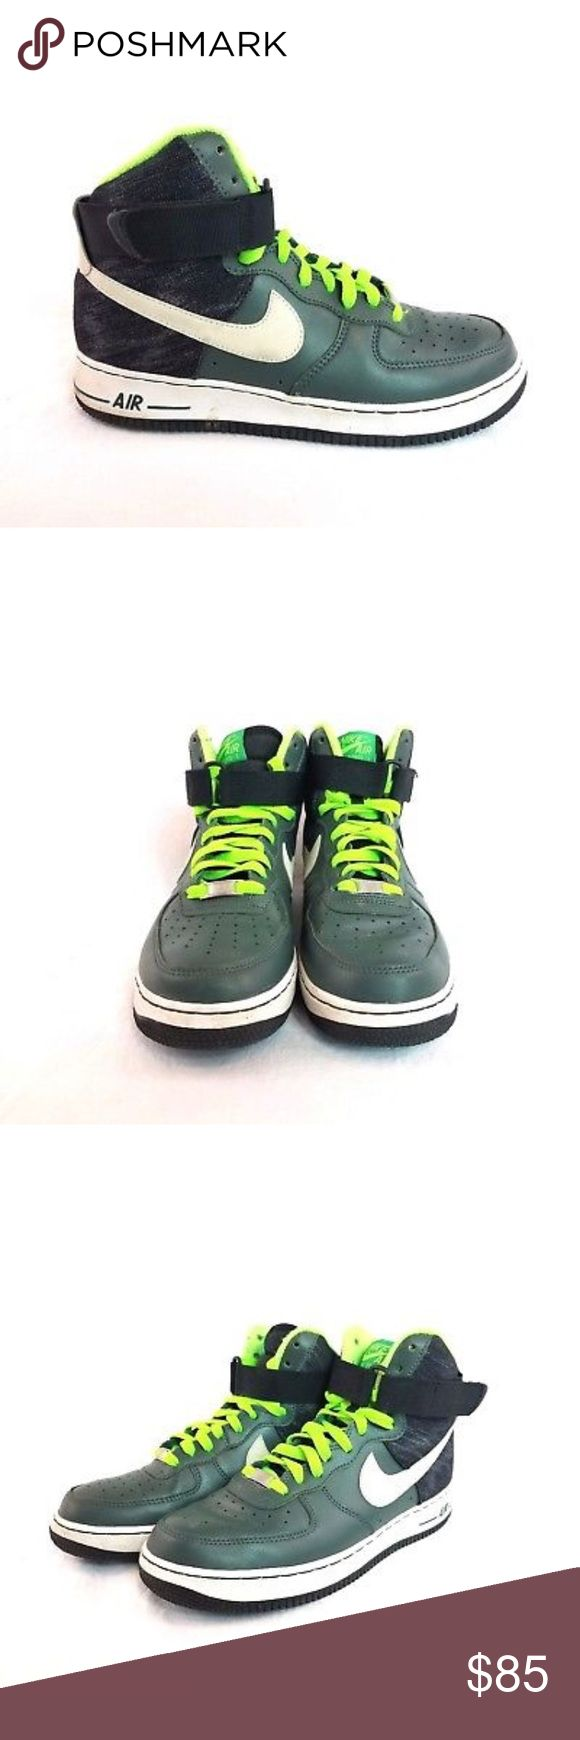 Nike Air Force 1 High 07 Vintage Green Sneakers Nike Air Force 1   Vintage Green Sneakers  315121-302  Men's Sz 8  In great pre-owned condition Air Force Shoes Athletic Shoes